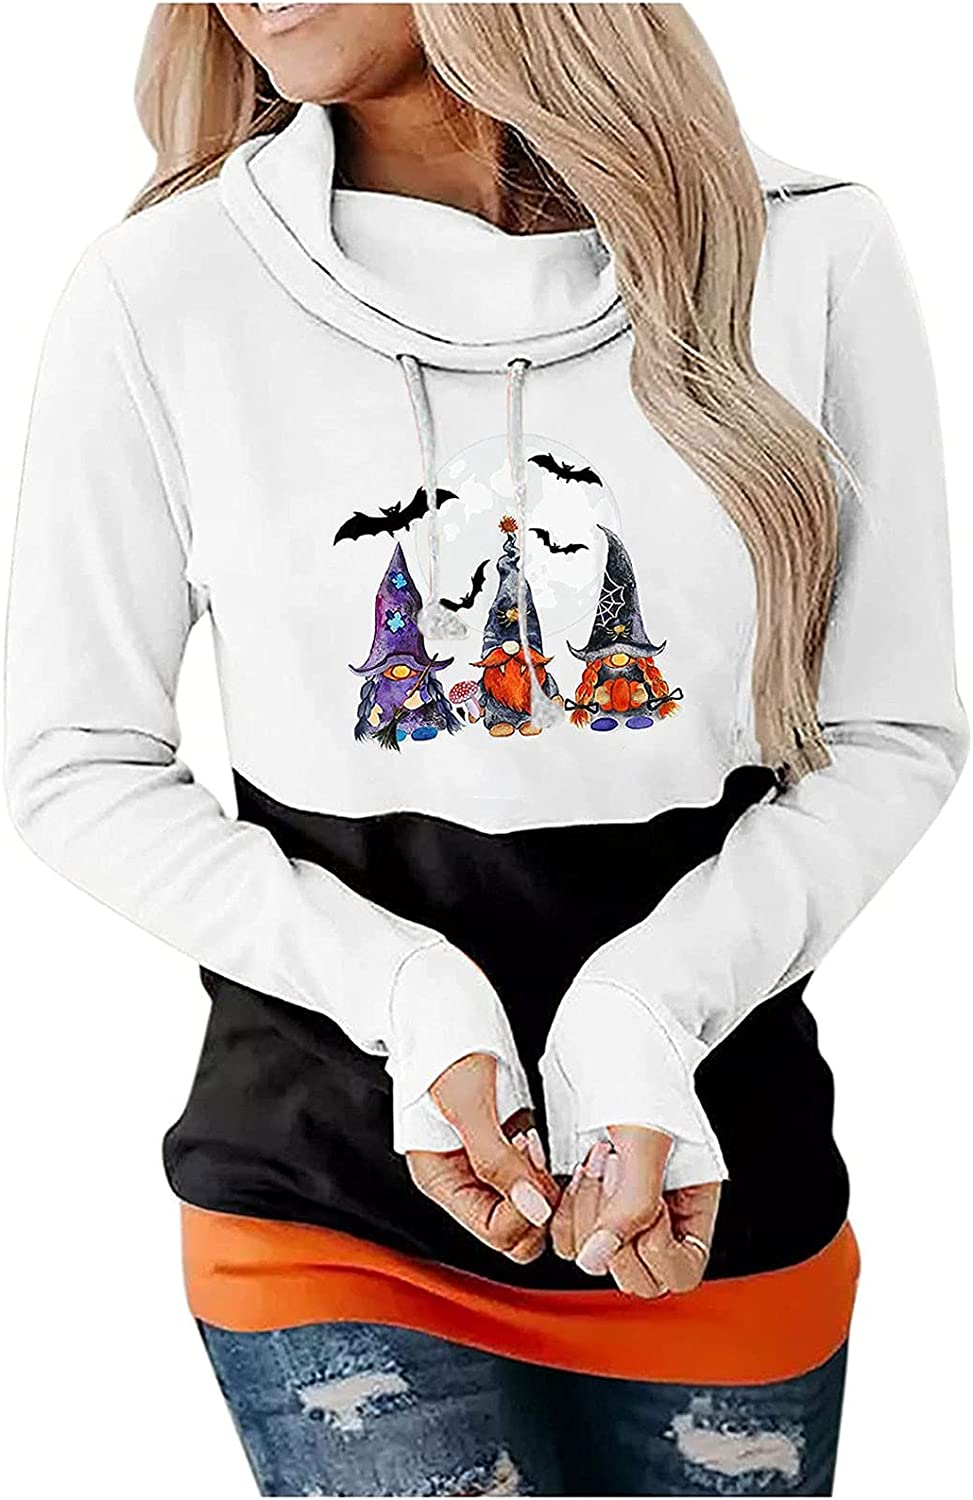 Women Fitted Hooded Halloween Sweatshirt, Cute Gnome Ghost Graphic Casual Pullover Tunic Fall Blouse Tops Tshirts